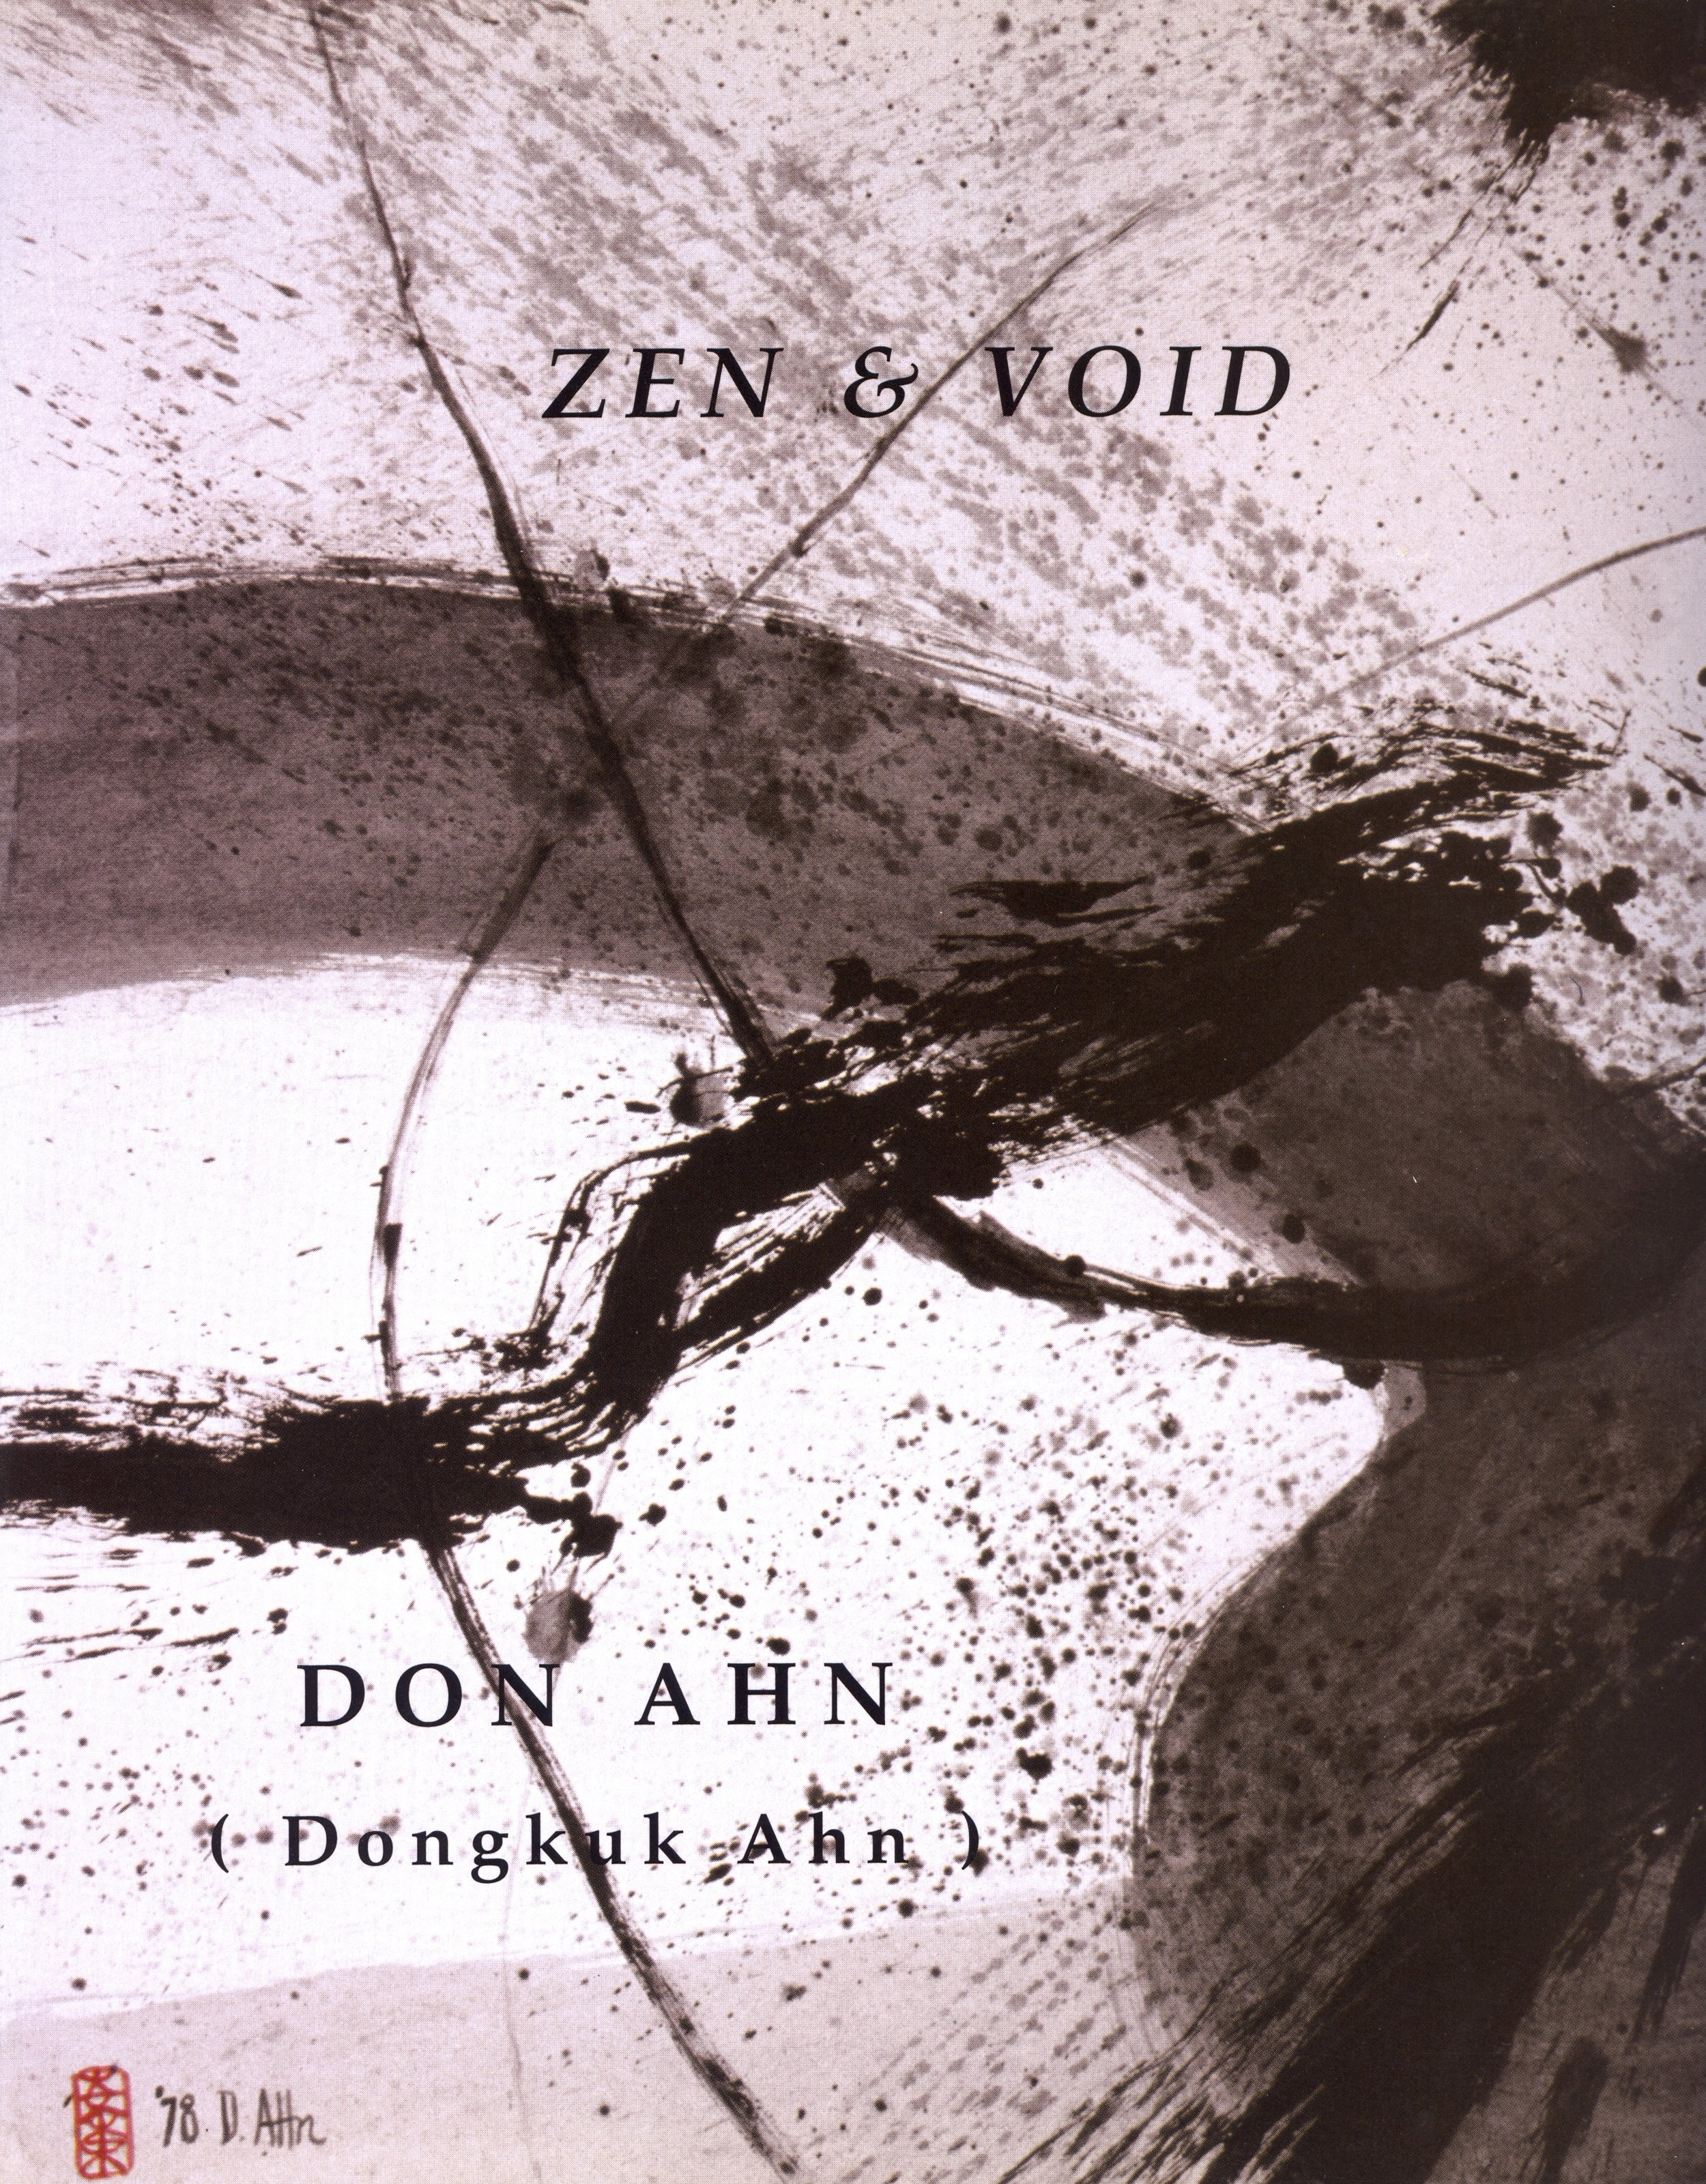 Cover:   Zen Struggle   Ink on rice paper, 26 1/2'' x 34'', 1978